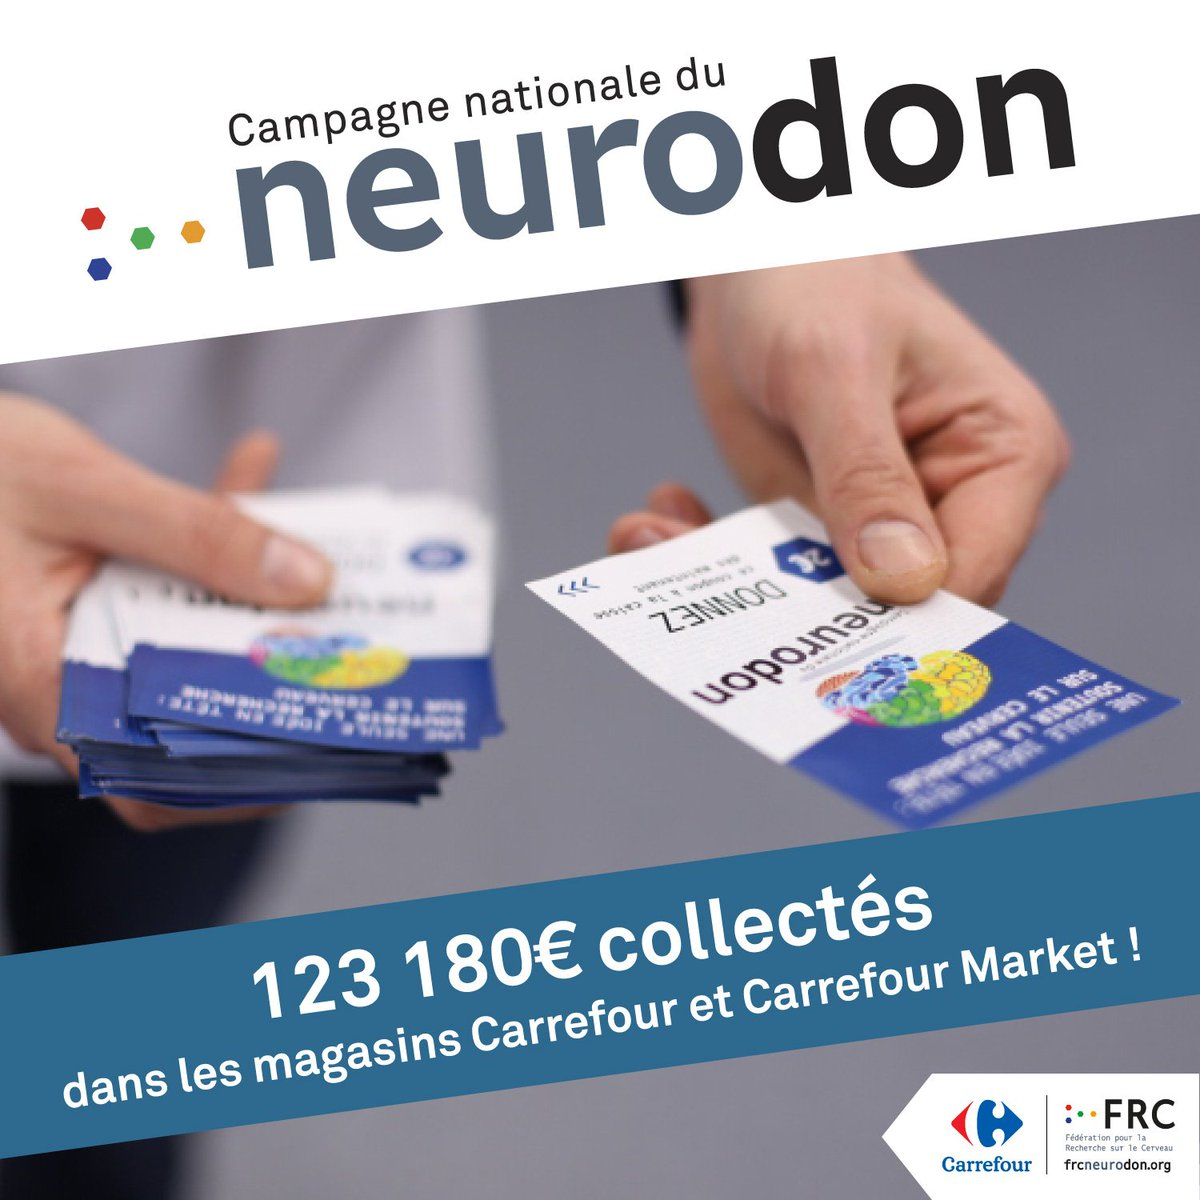 Carrefour france coupons